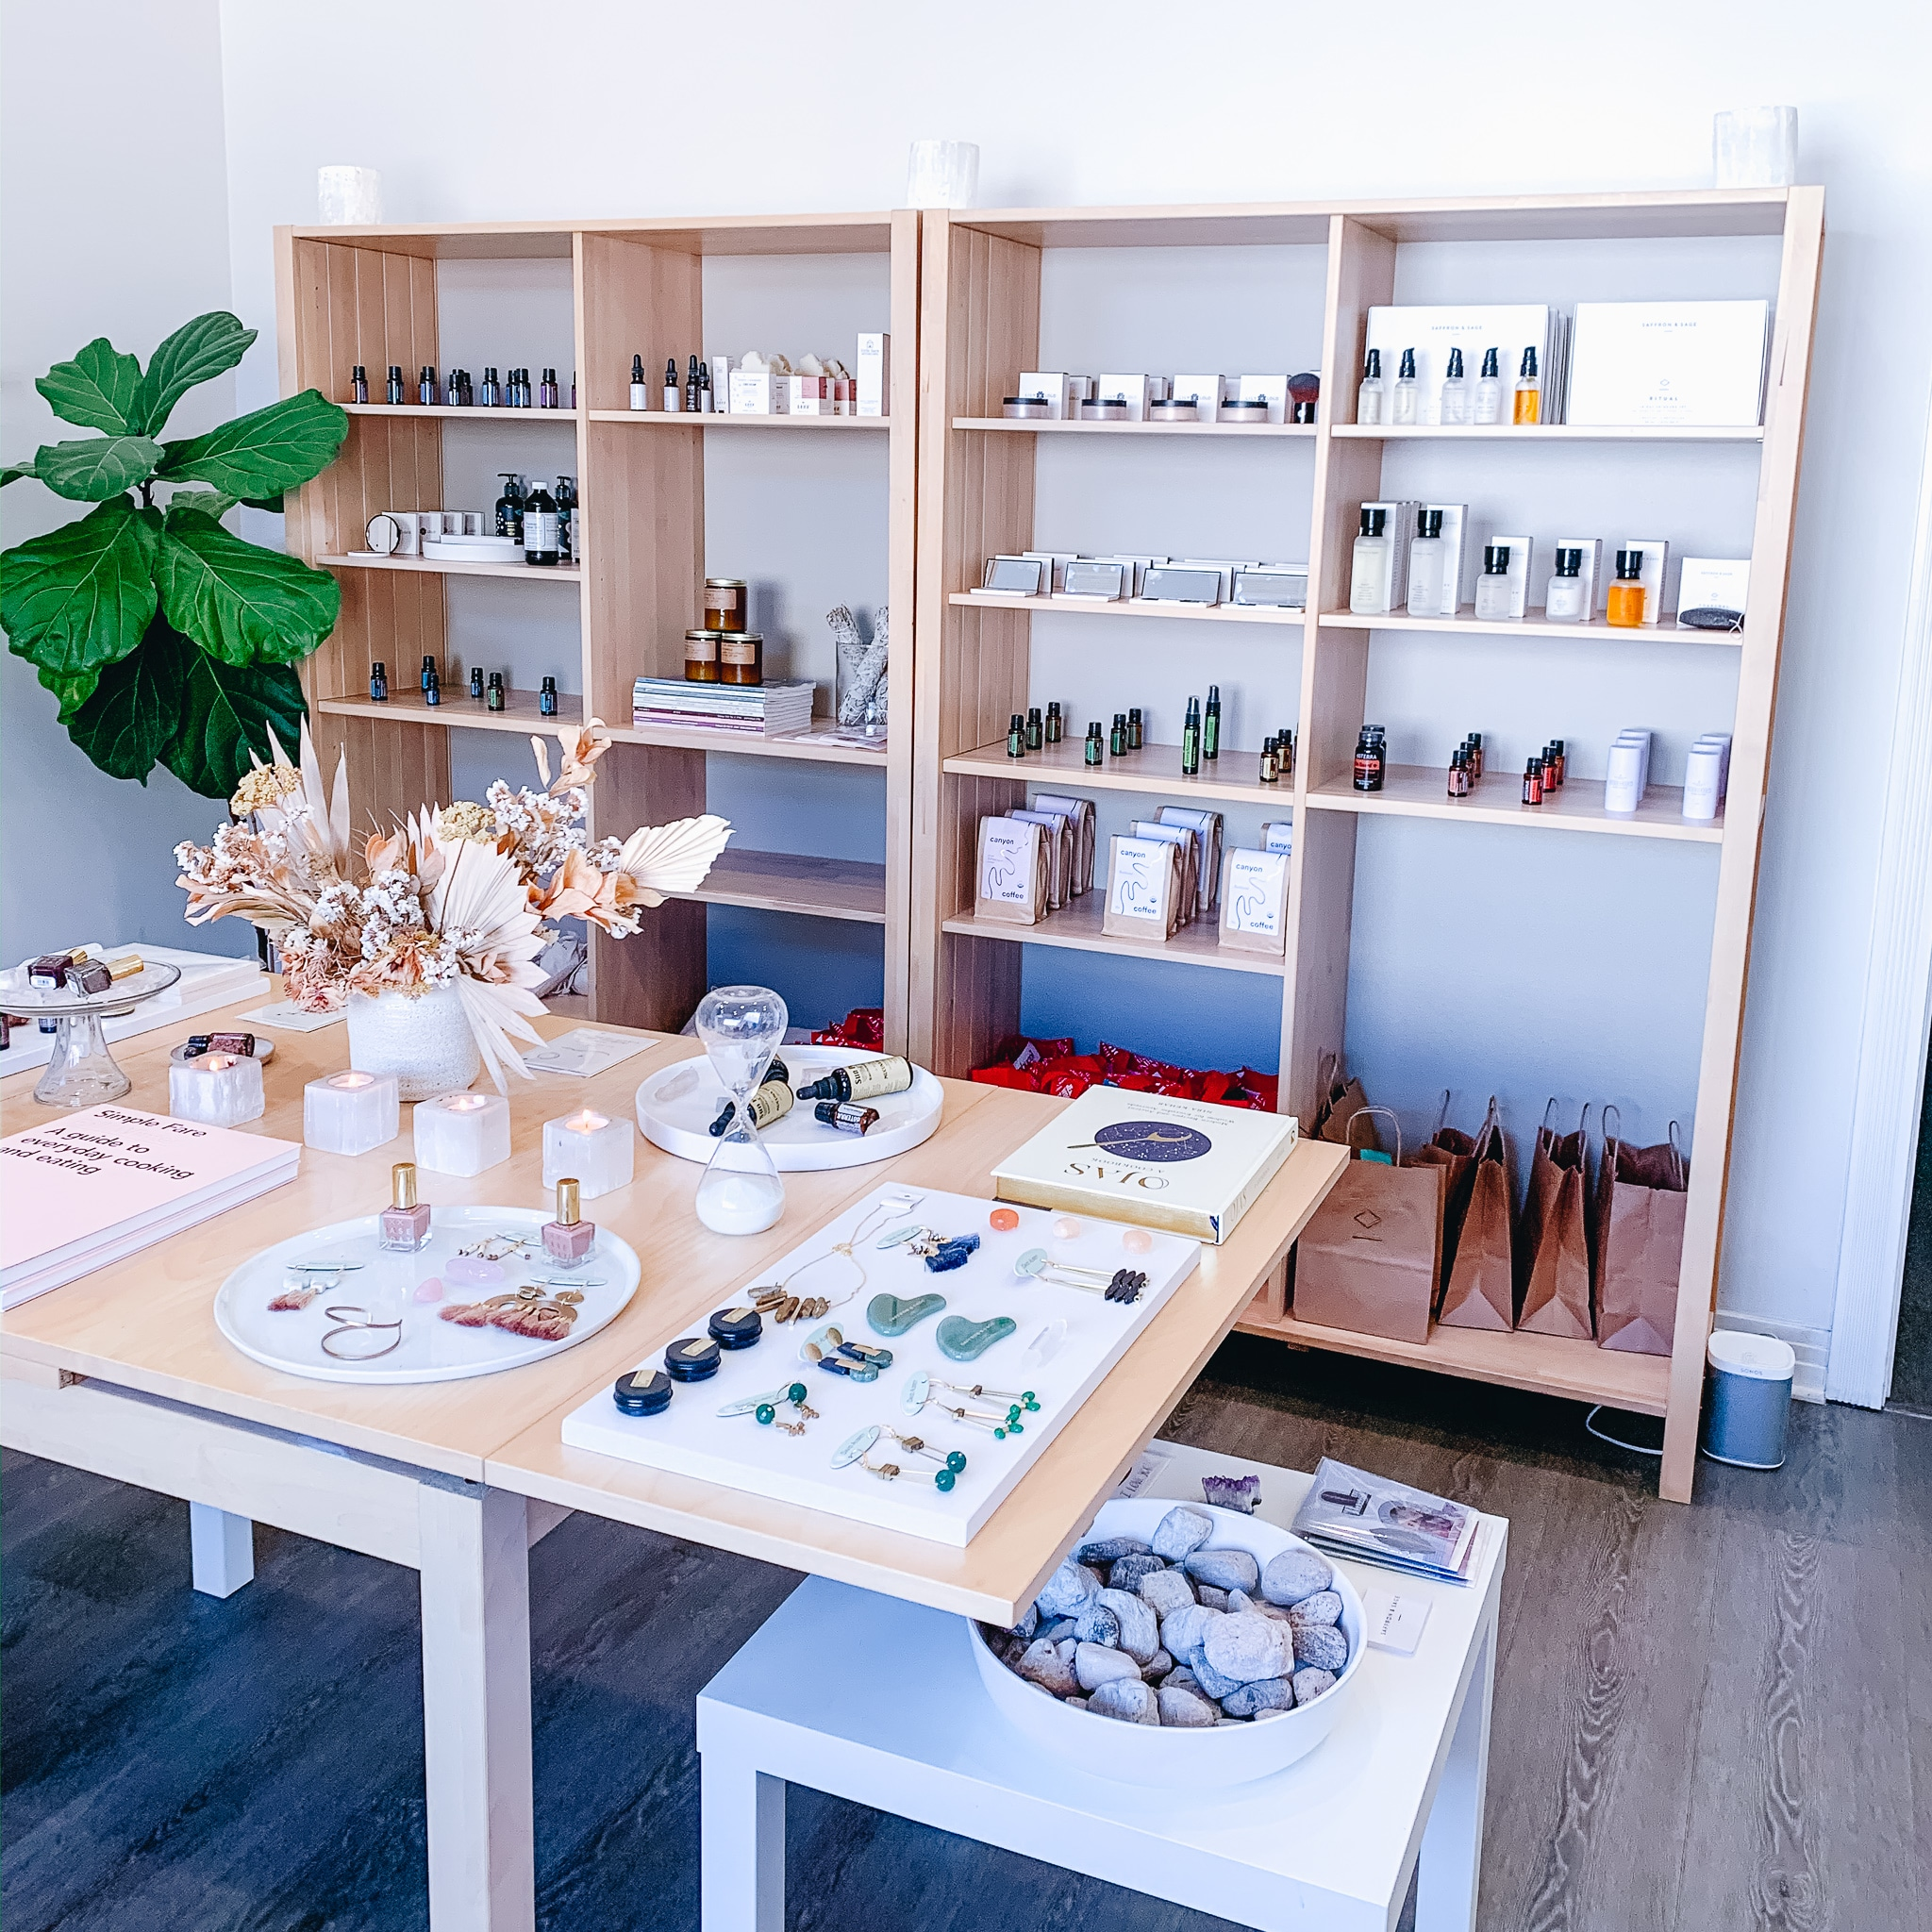 Saffron & Sage San Diego Wellness Boutique inside the yoga and wellness studio